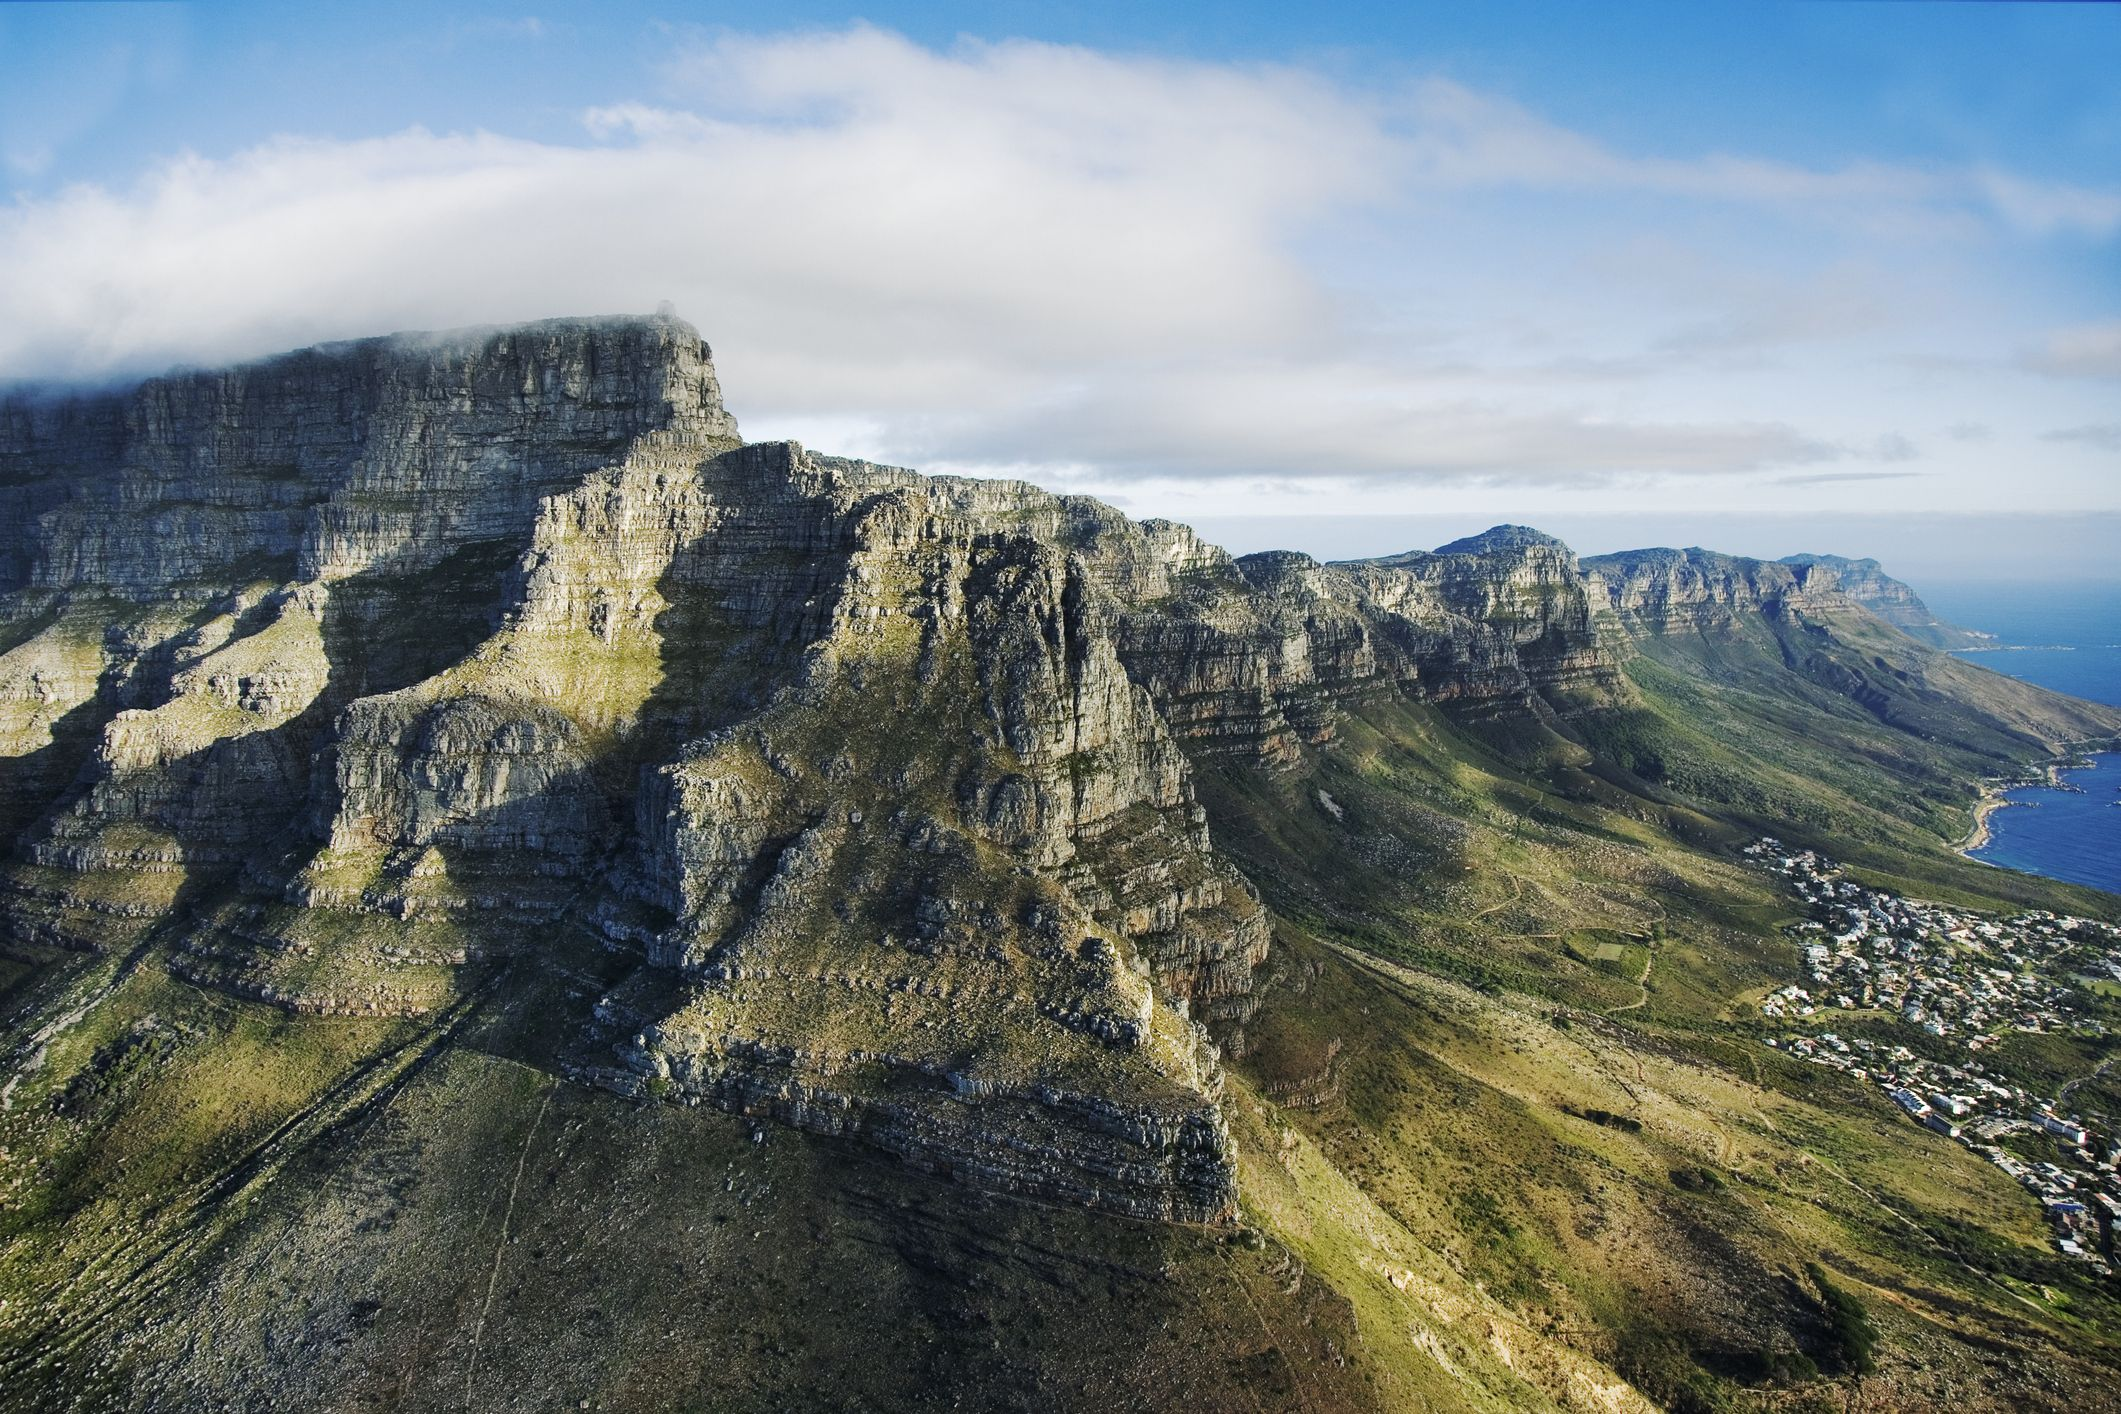 Seven natural wonders of the world: Table Mountain